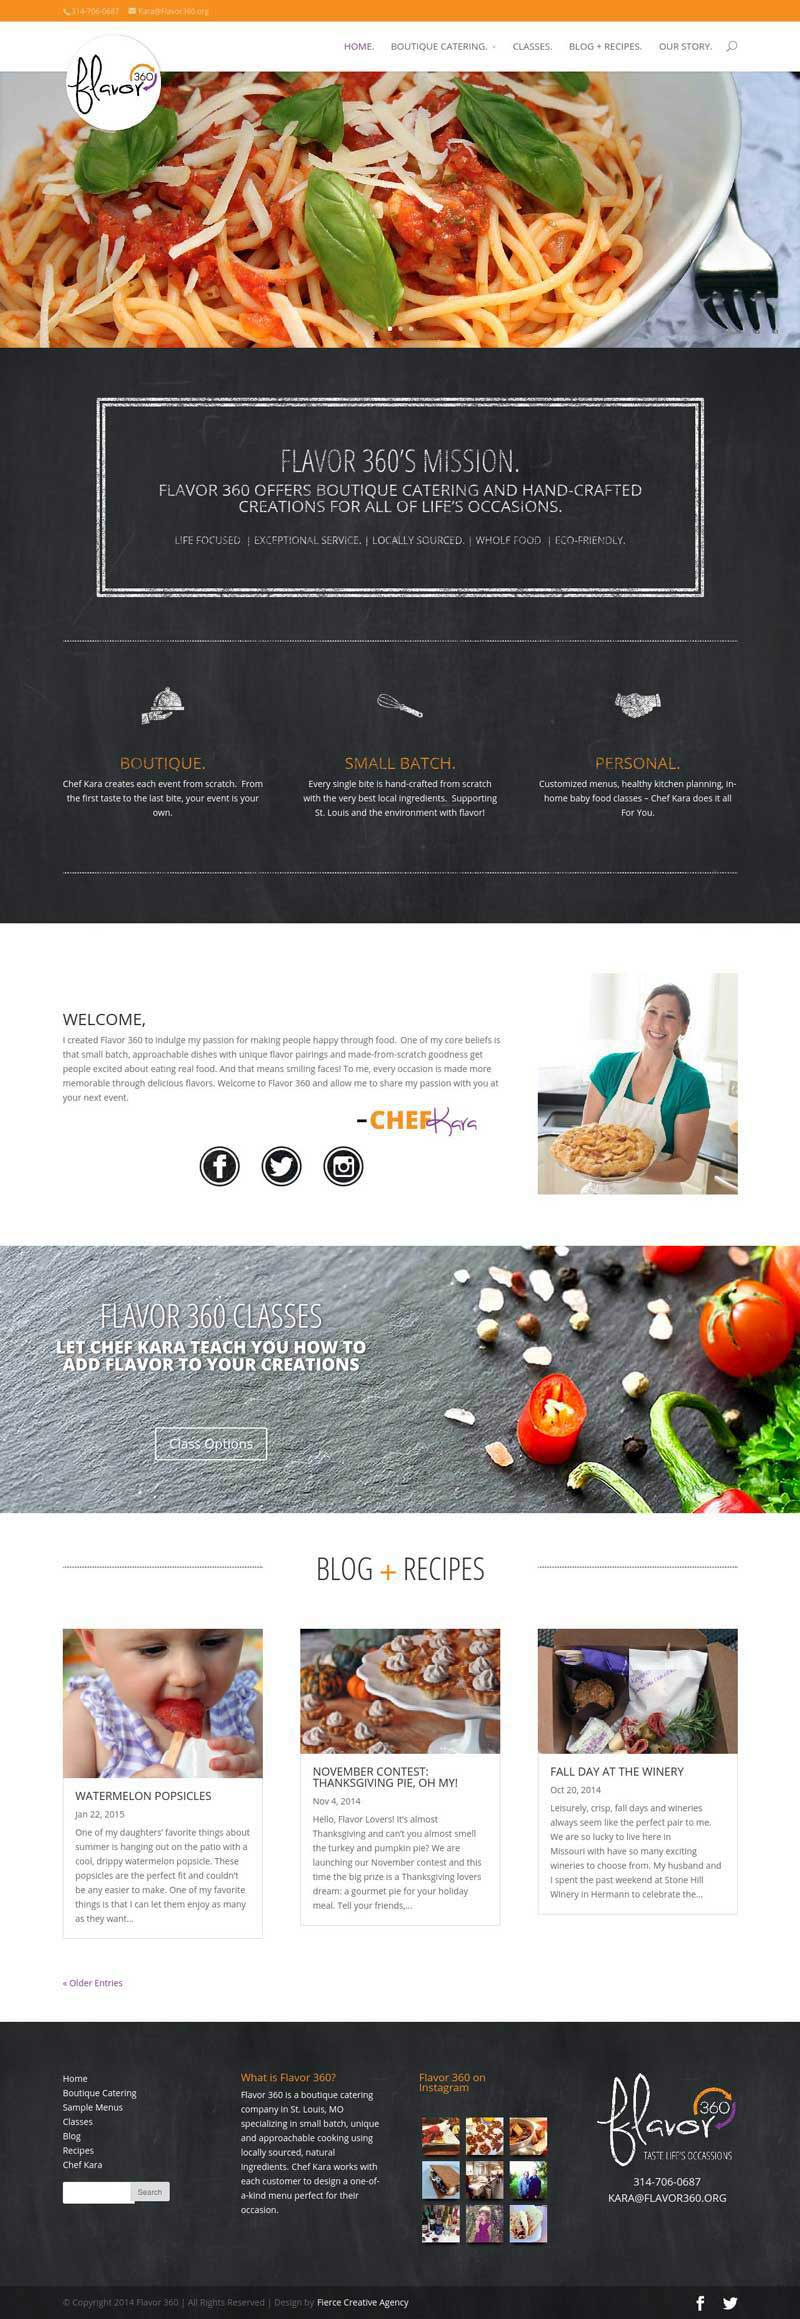 Flavor 360 Homepage